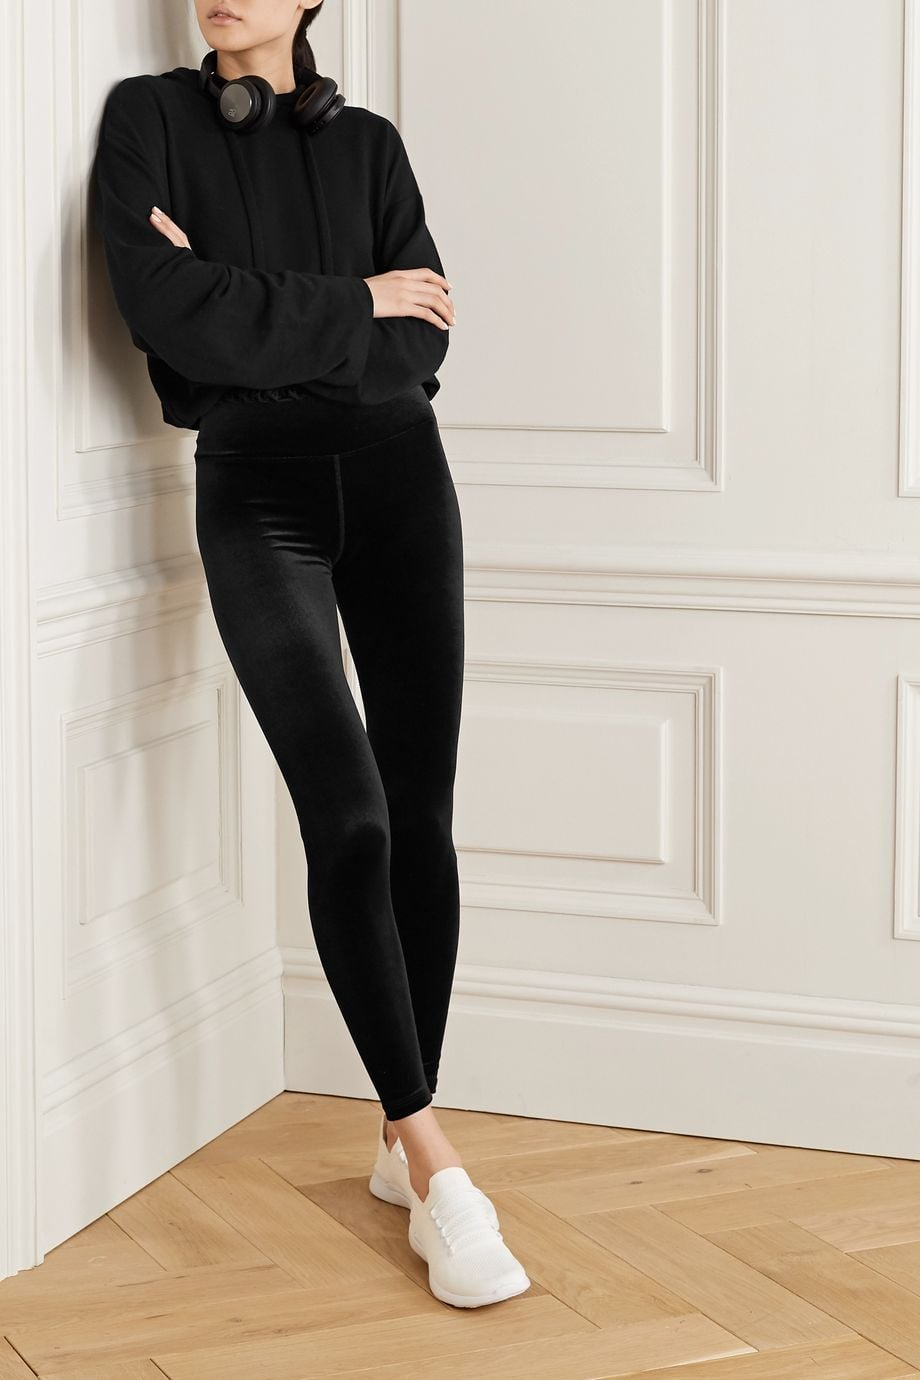 Year Of Ours Black Samba Ruffled Stretch Velvet Leggings How To Make The Cutest Outfits Possible With Your Comfiest Clothes Popsugar Fashion Photo 26